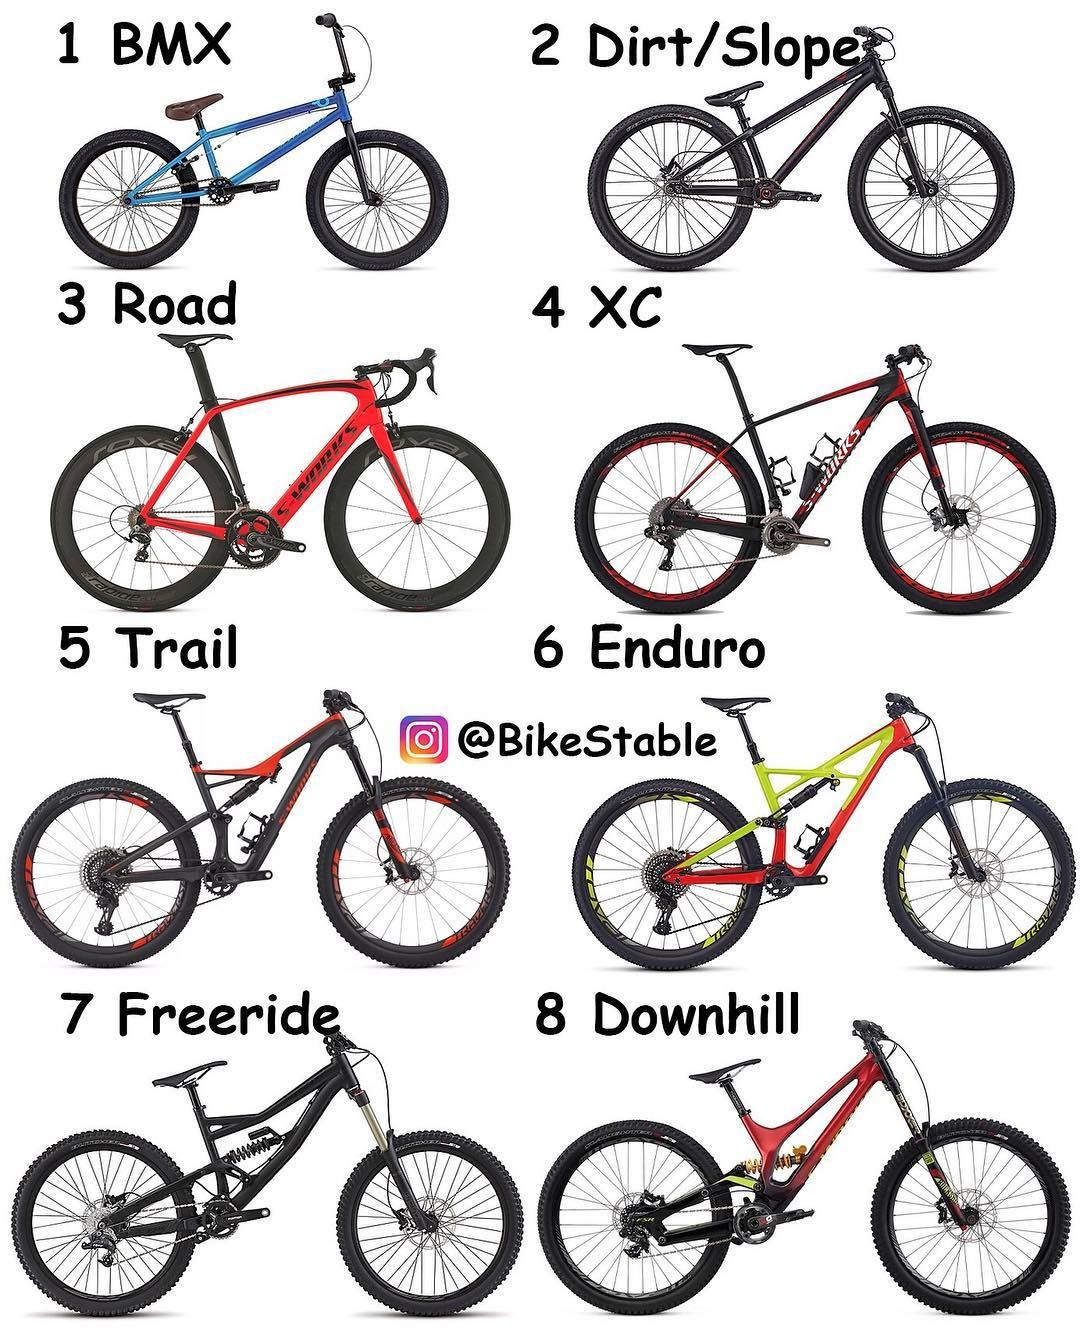 5 859 Likes 1 252 Comments Bikestable Mtb Media